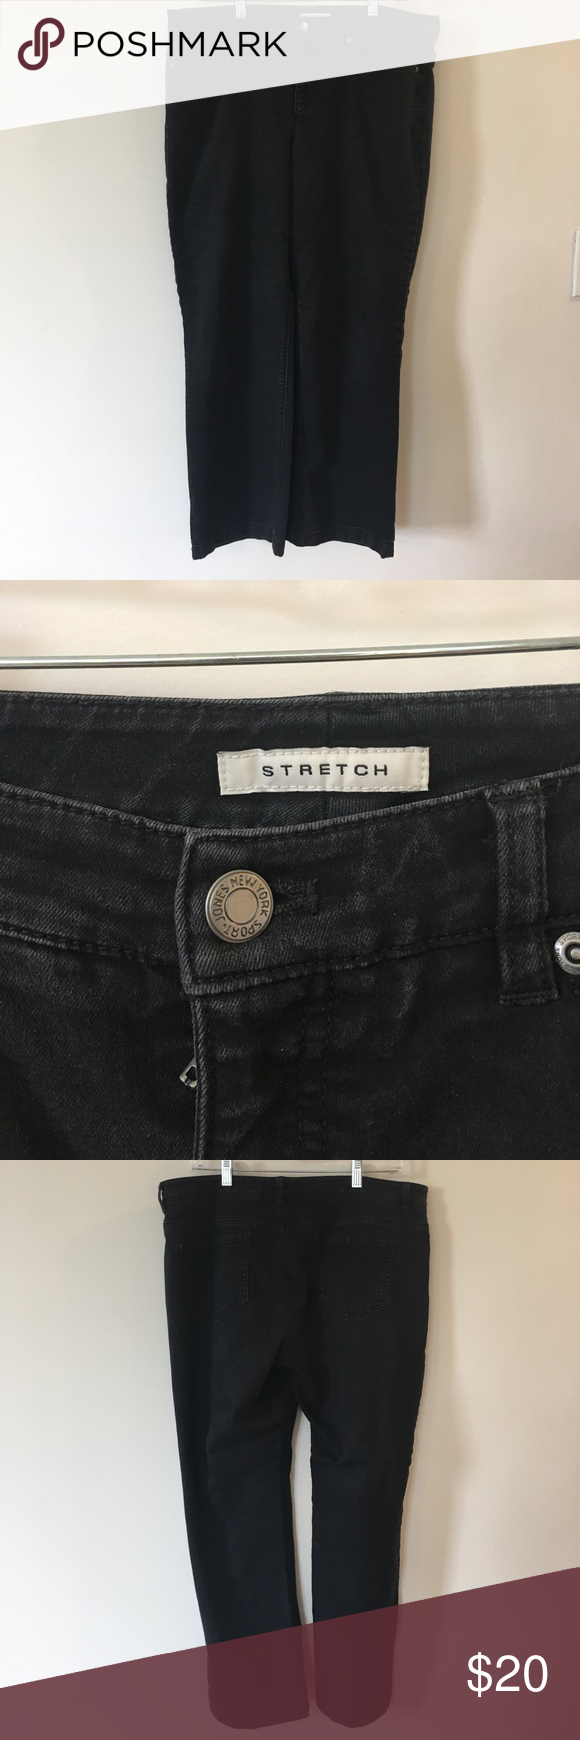 Jones New York black jean Black jeans. Inseam measurement is about 26 inches. Great condition. Size 14. Stretch material. Jones New York Jeans